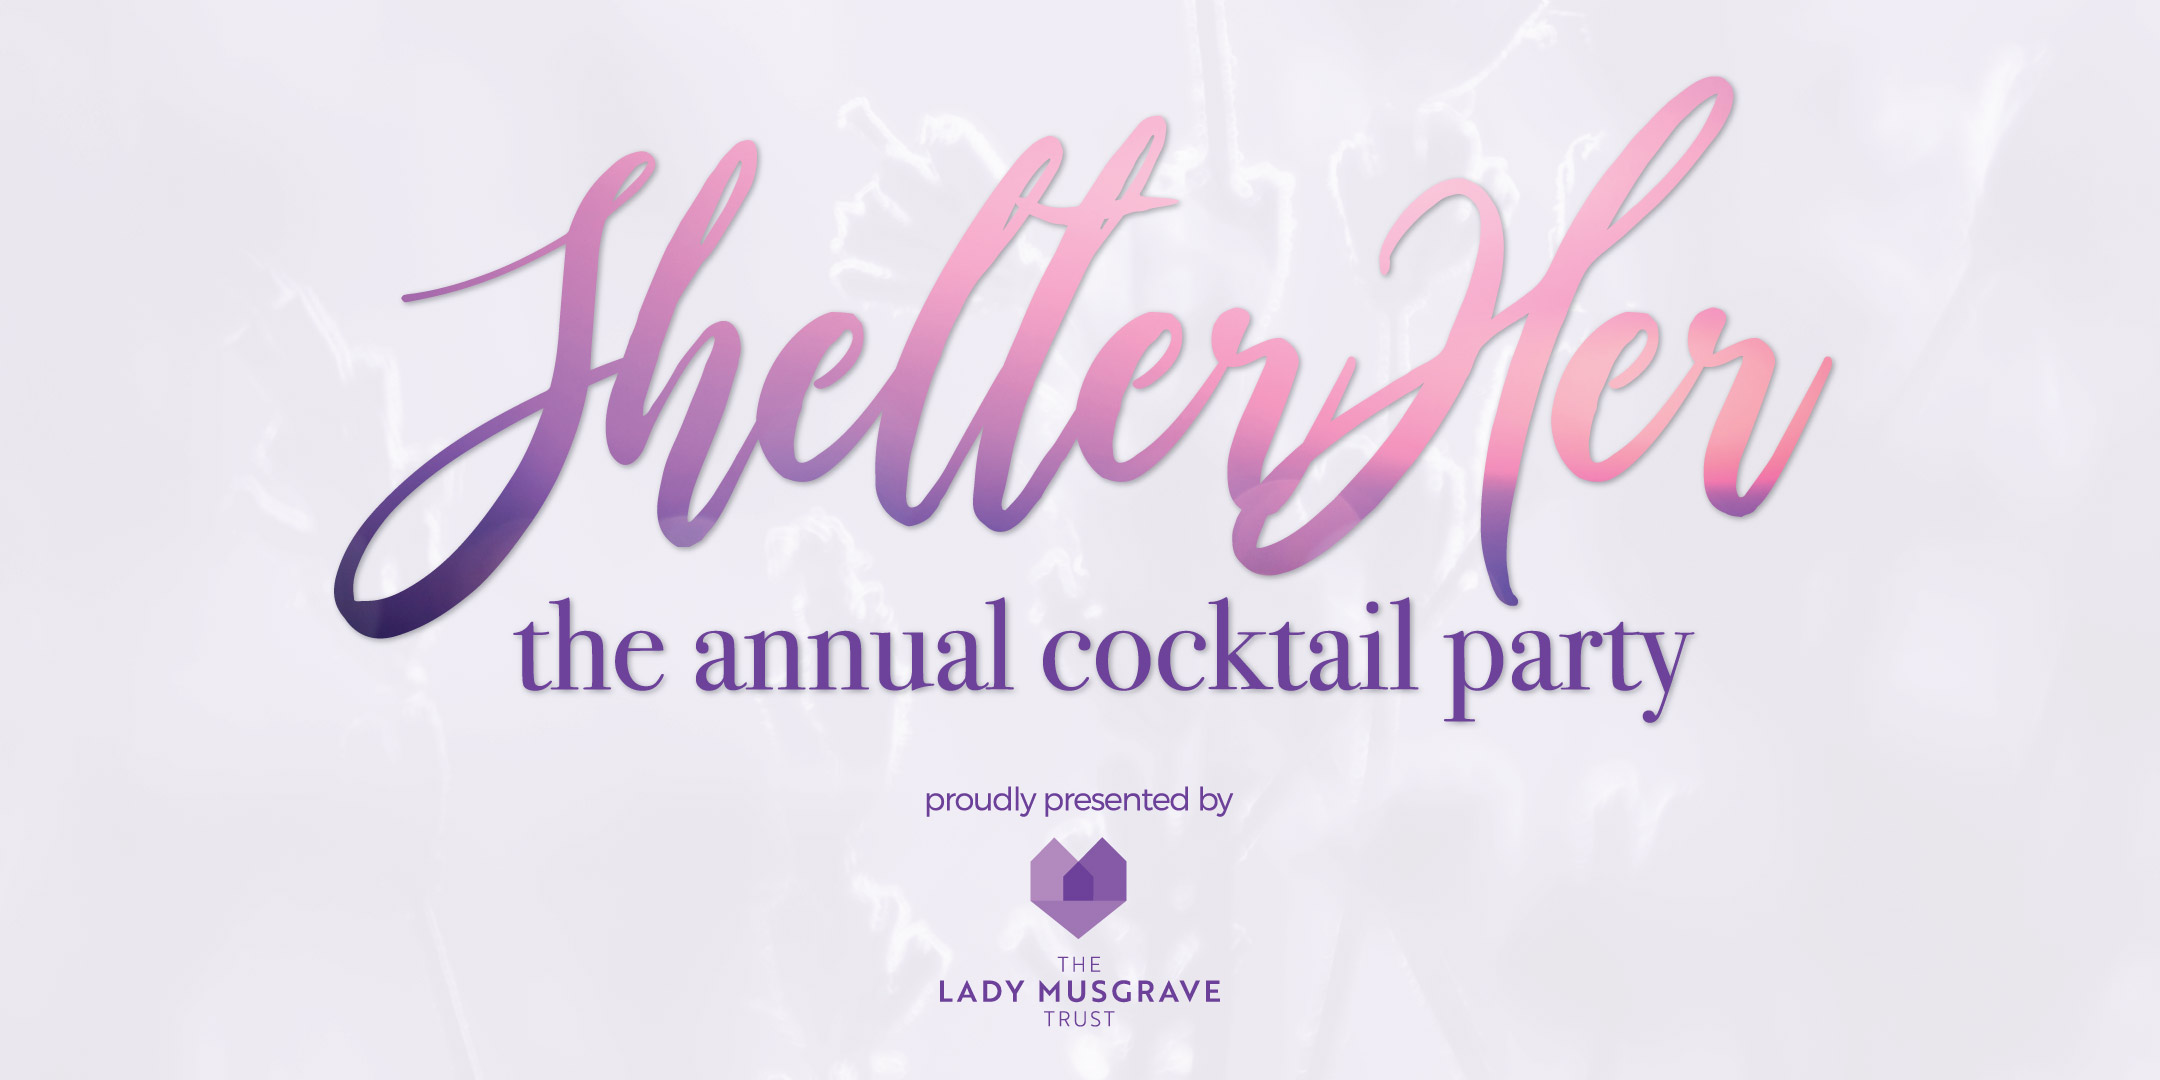 ShelterHer - The Annual Cocktail Party